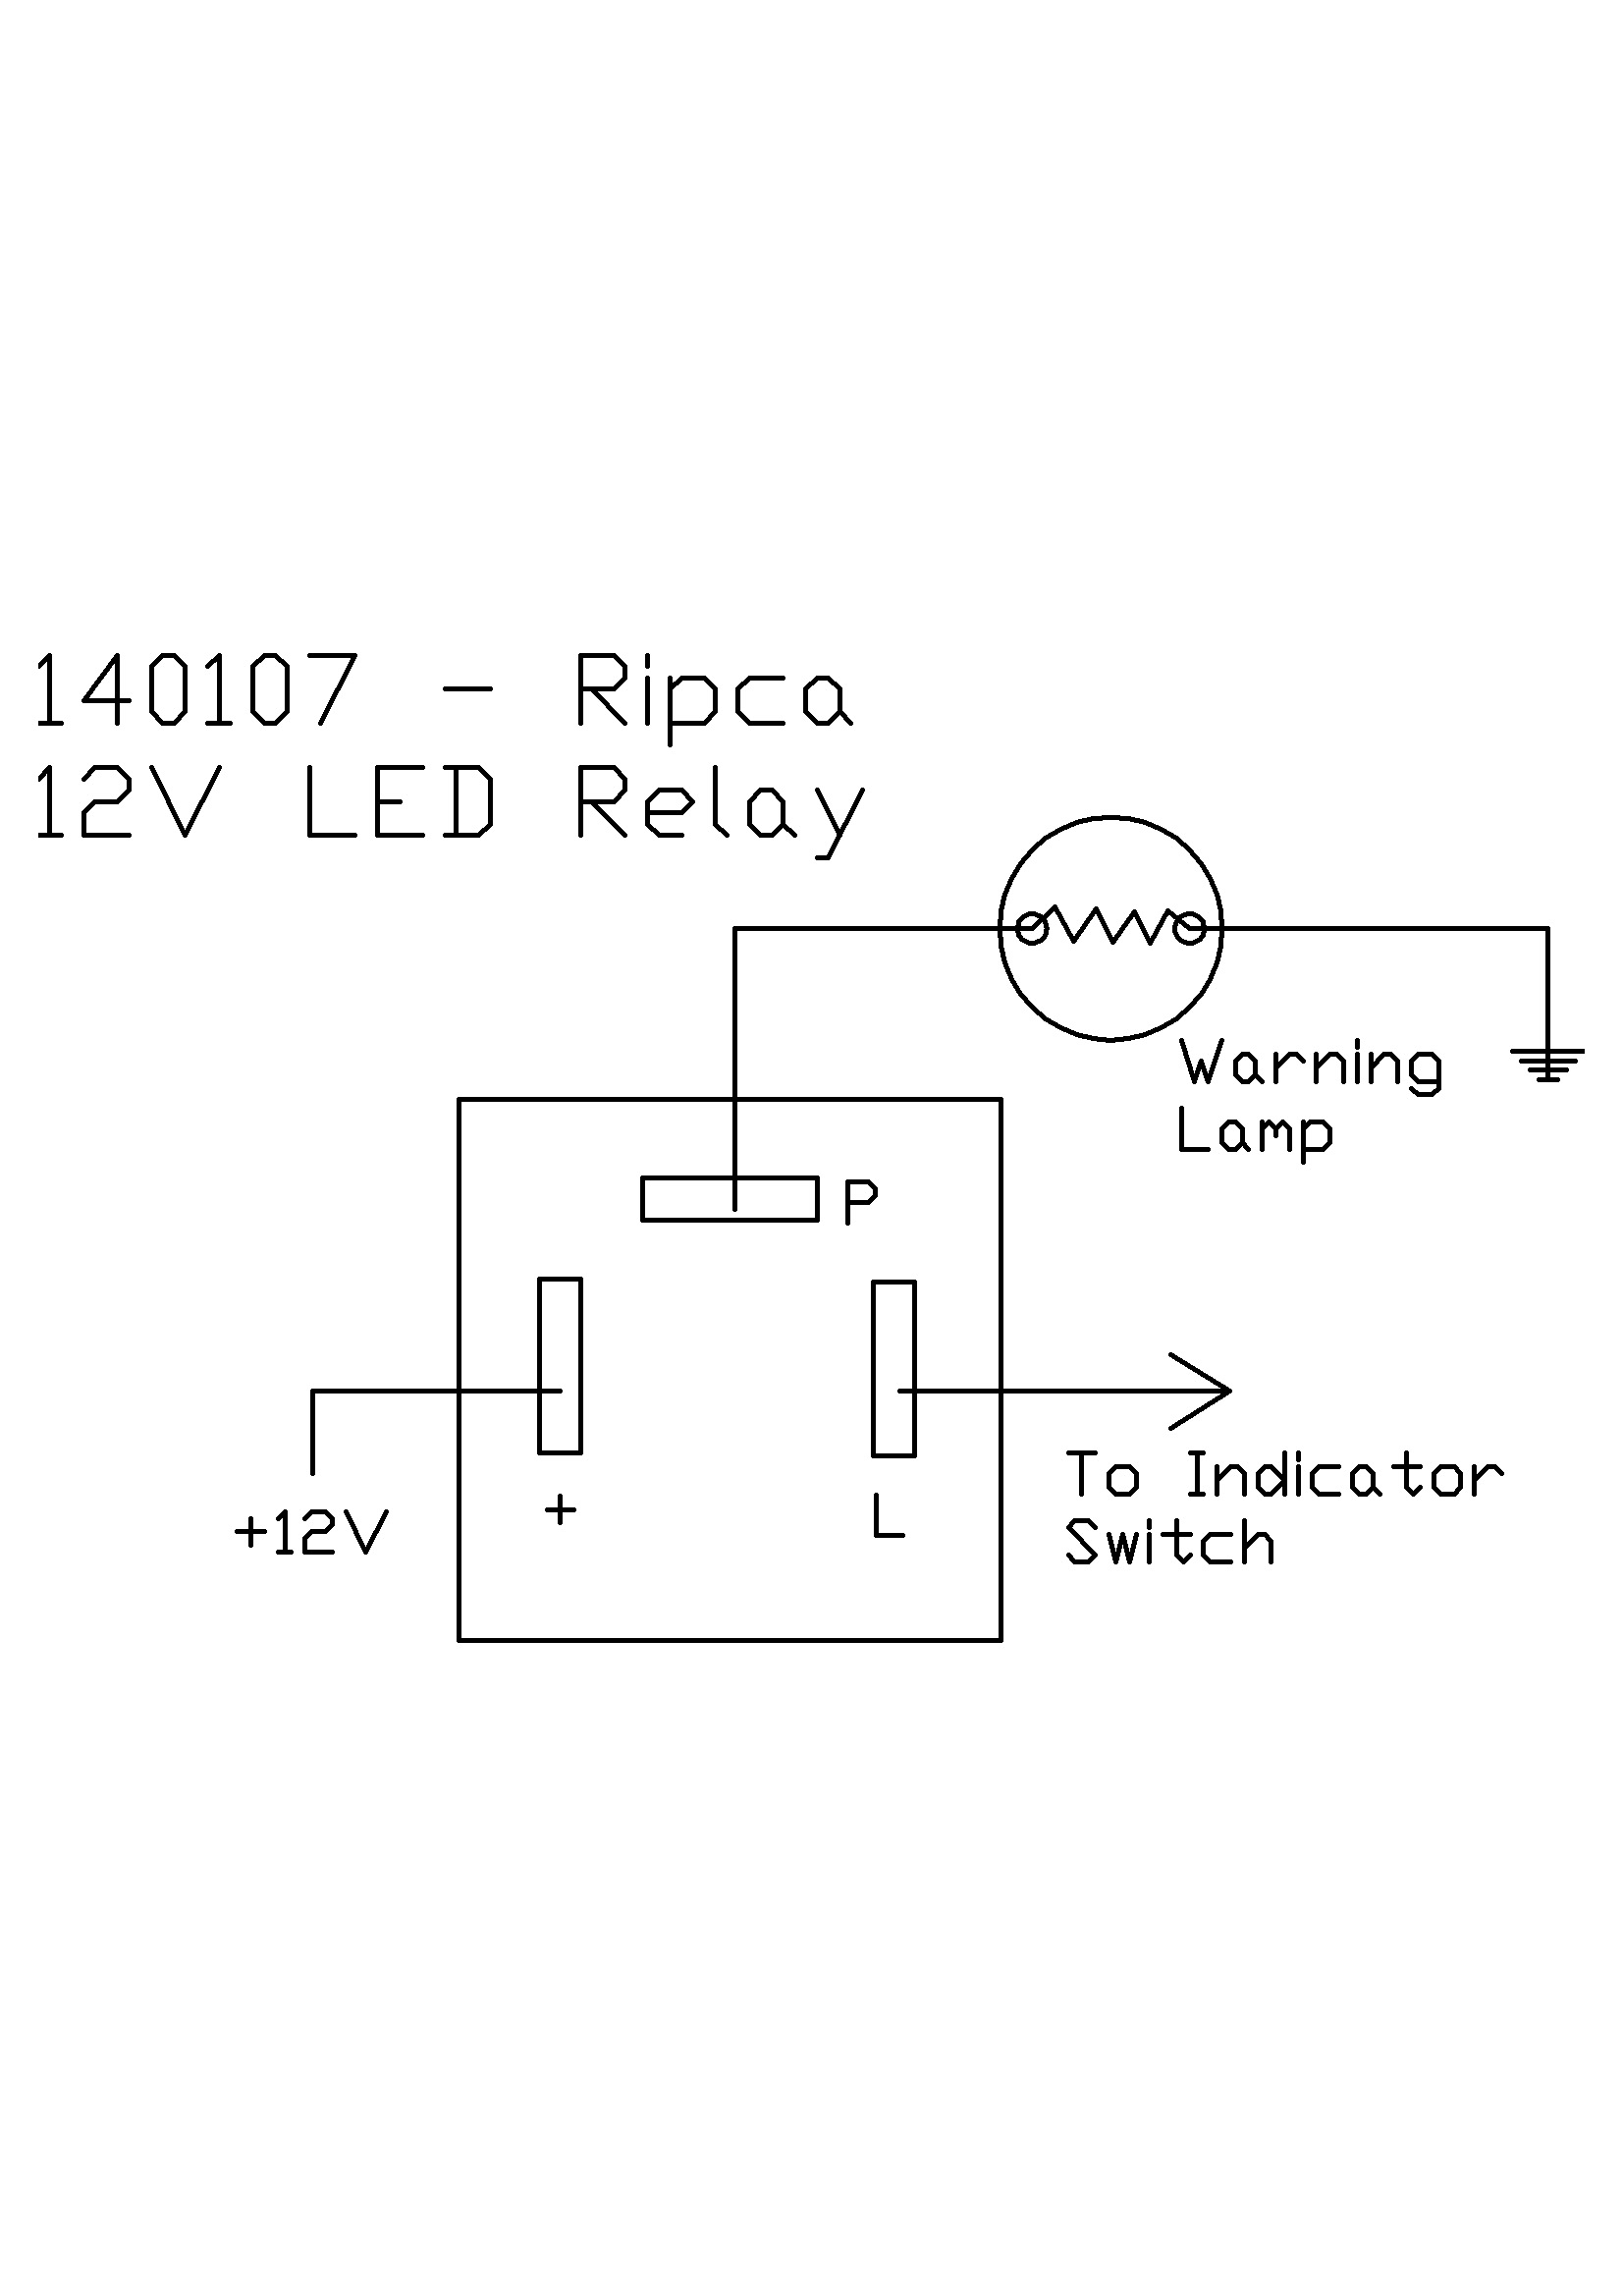 140107 ripca 12 volt led flasher unit flasher unit wiring diagram at mifinder.co